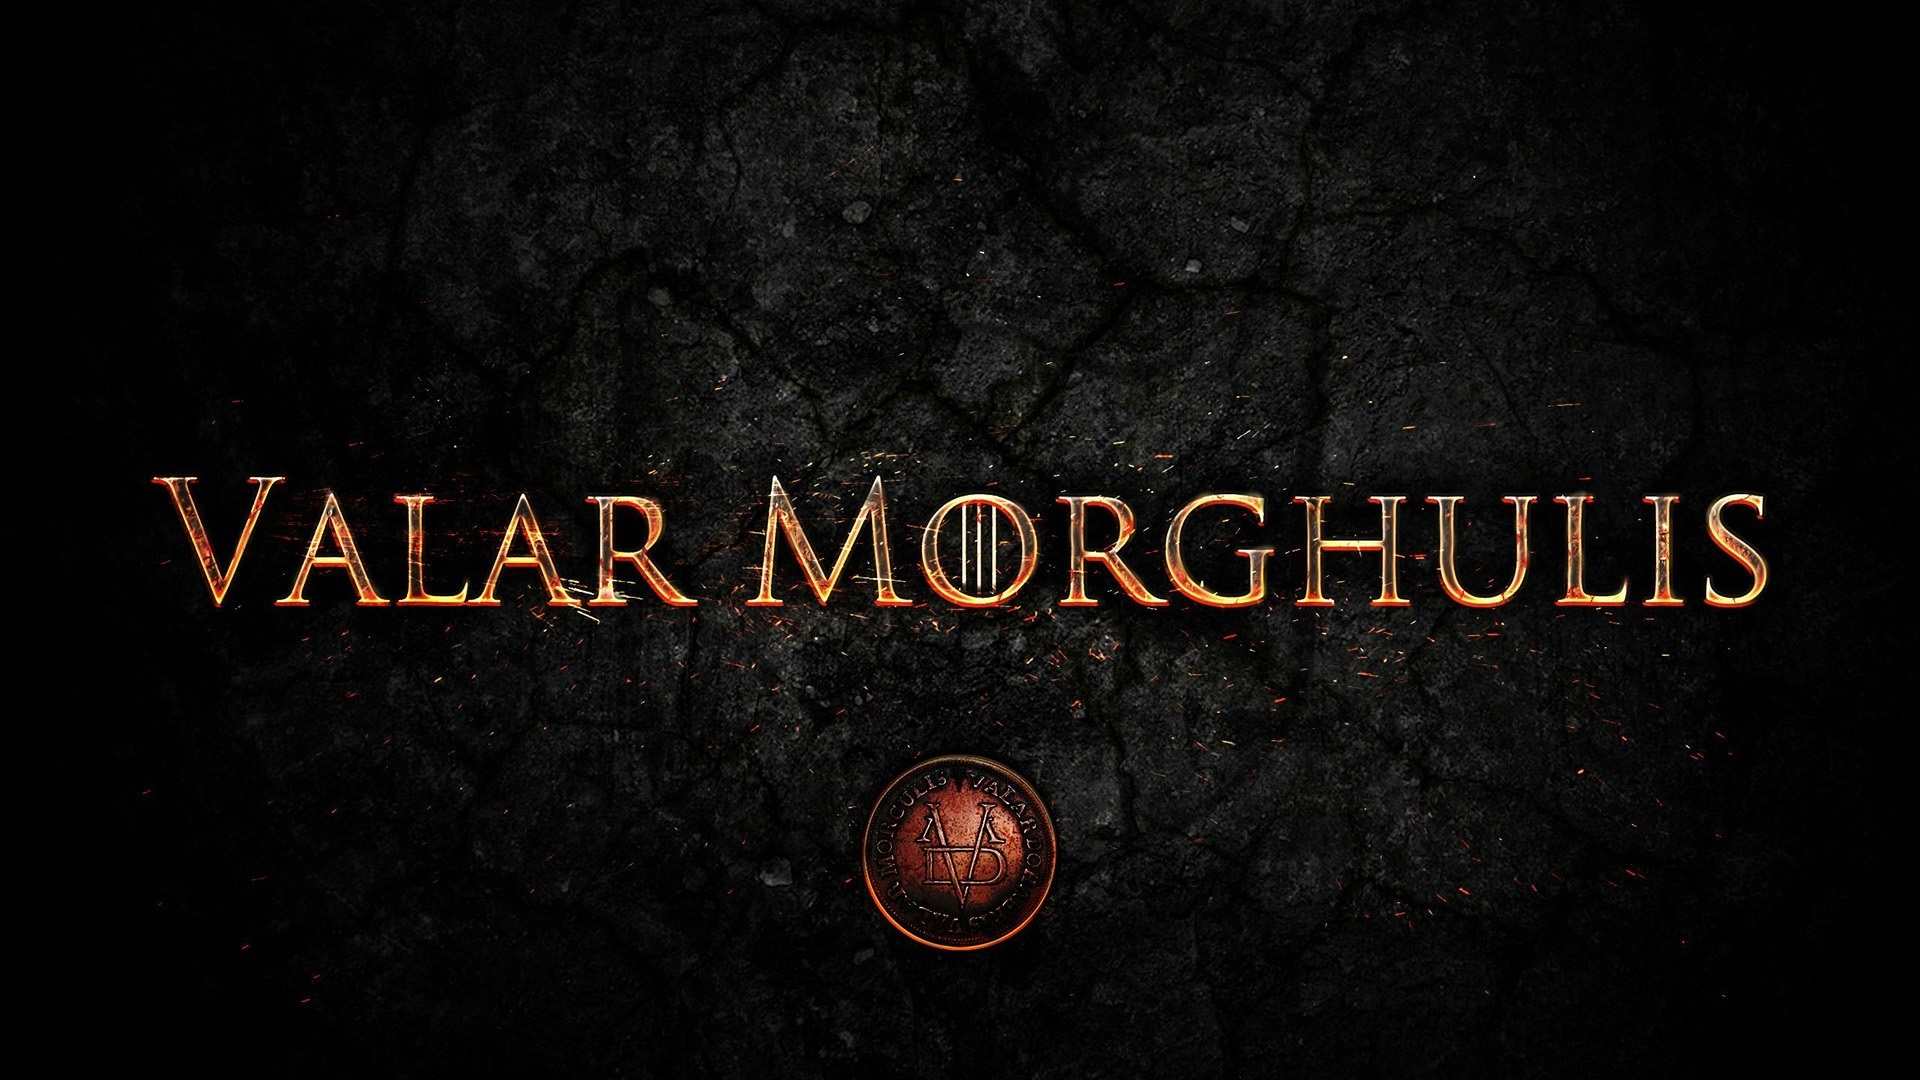 Valar Morghulis Wallpaper